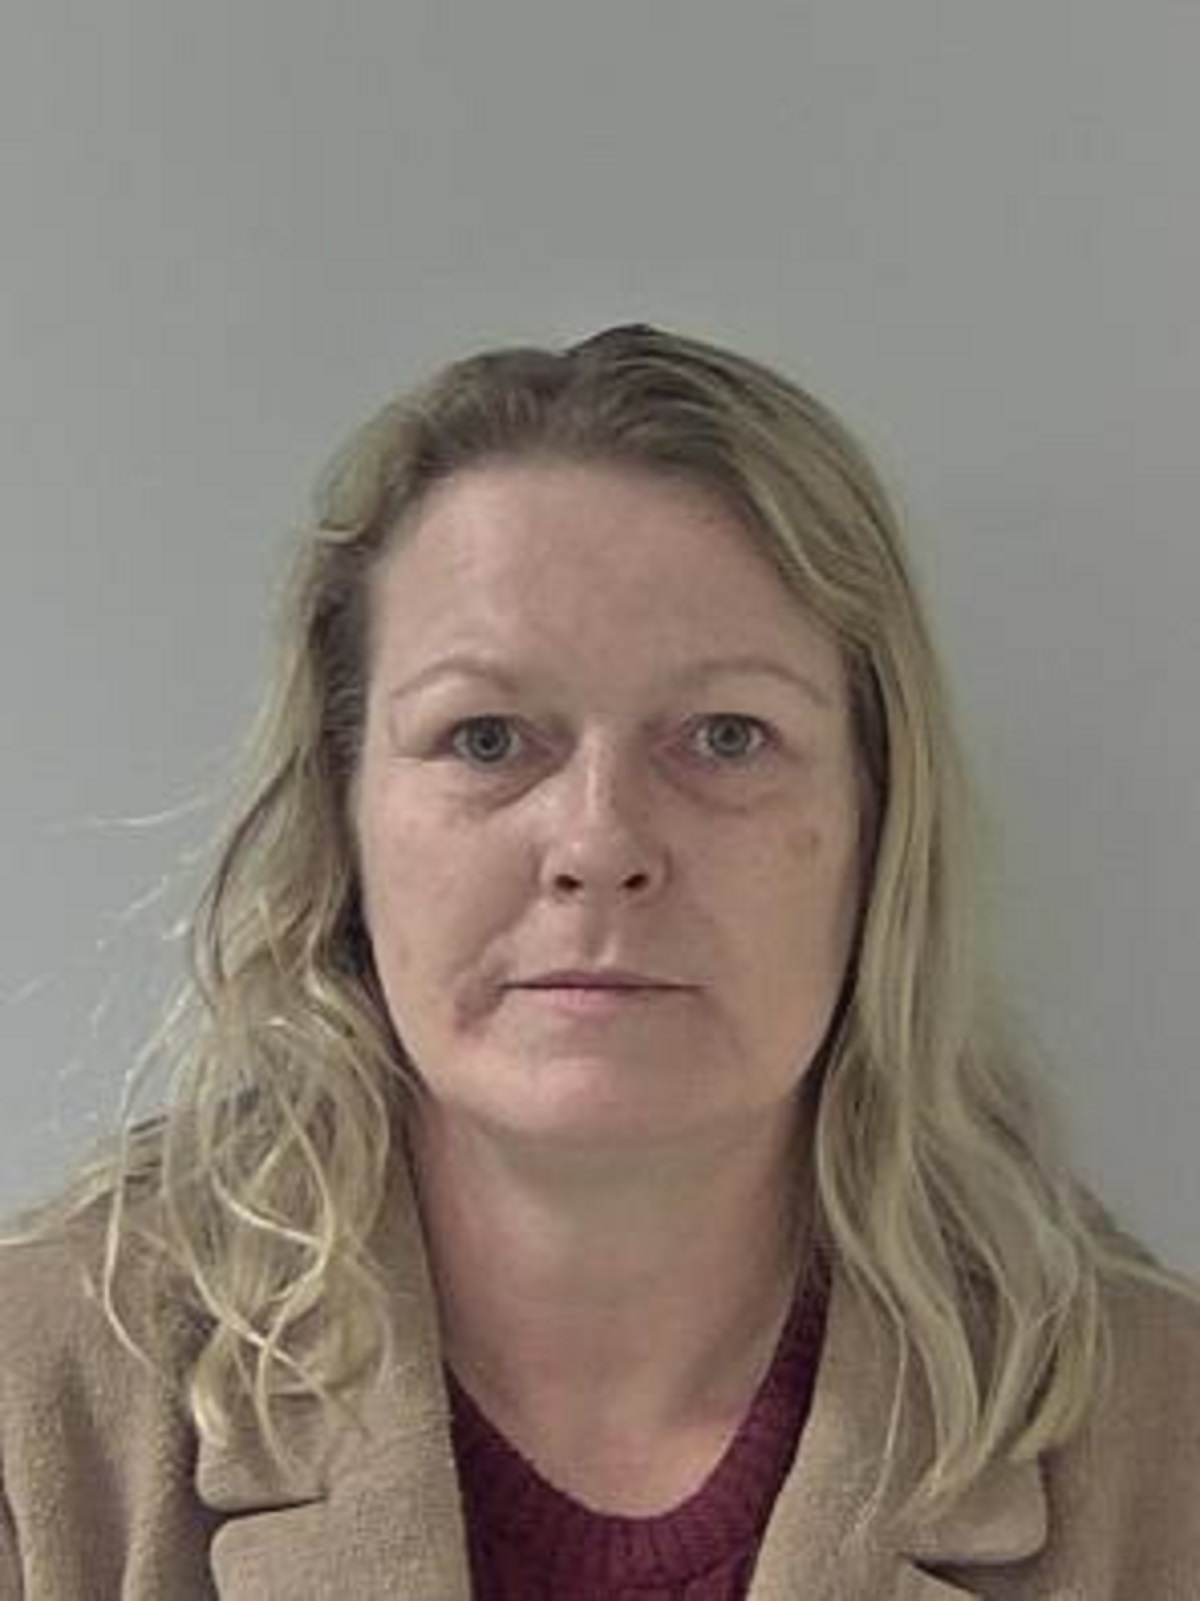 GUILTY: Denise Lynch. Photo: West Mercia Police